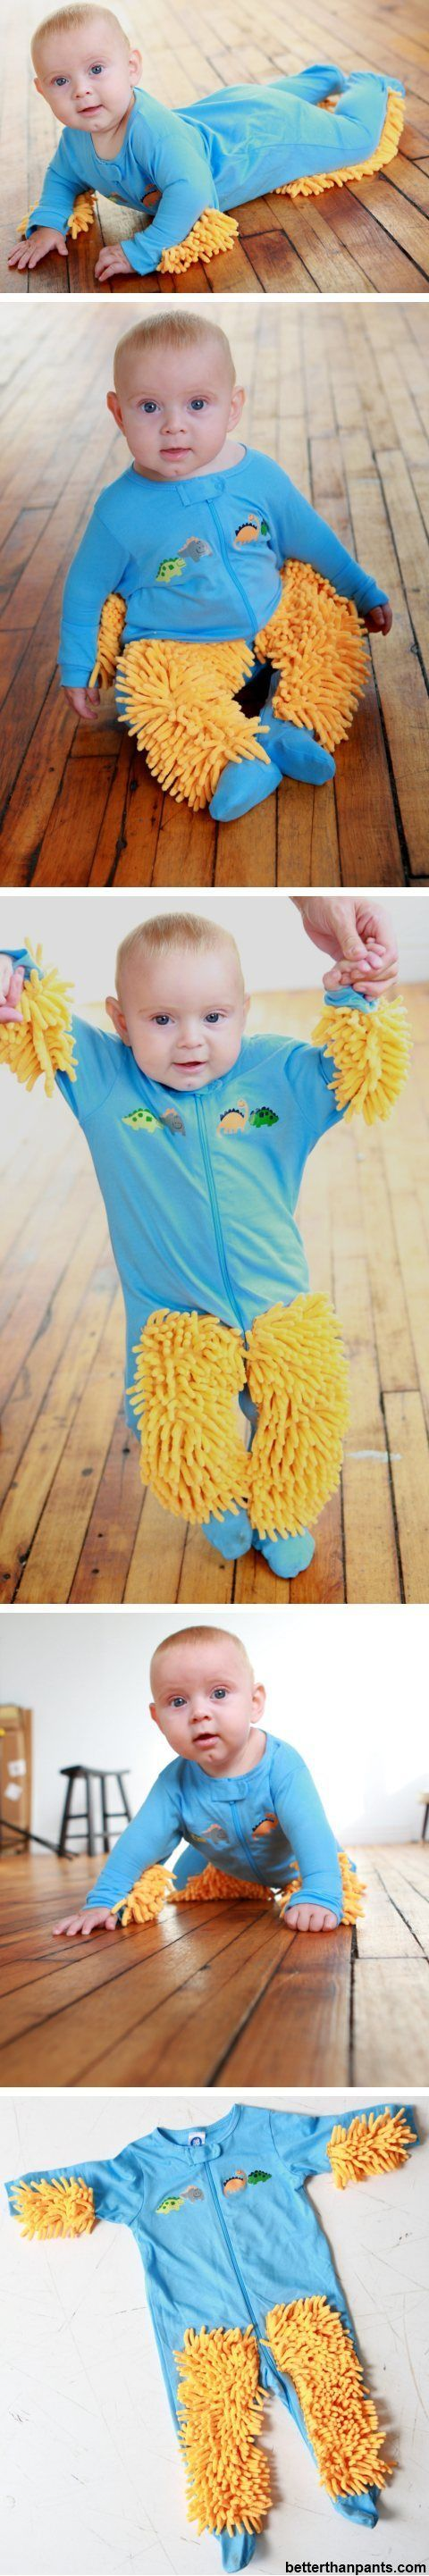 Baby Mop: Put That Baby To Some Use - OhGizmo! Like this.